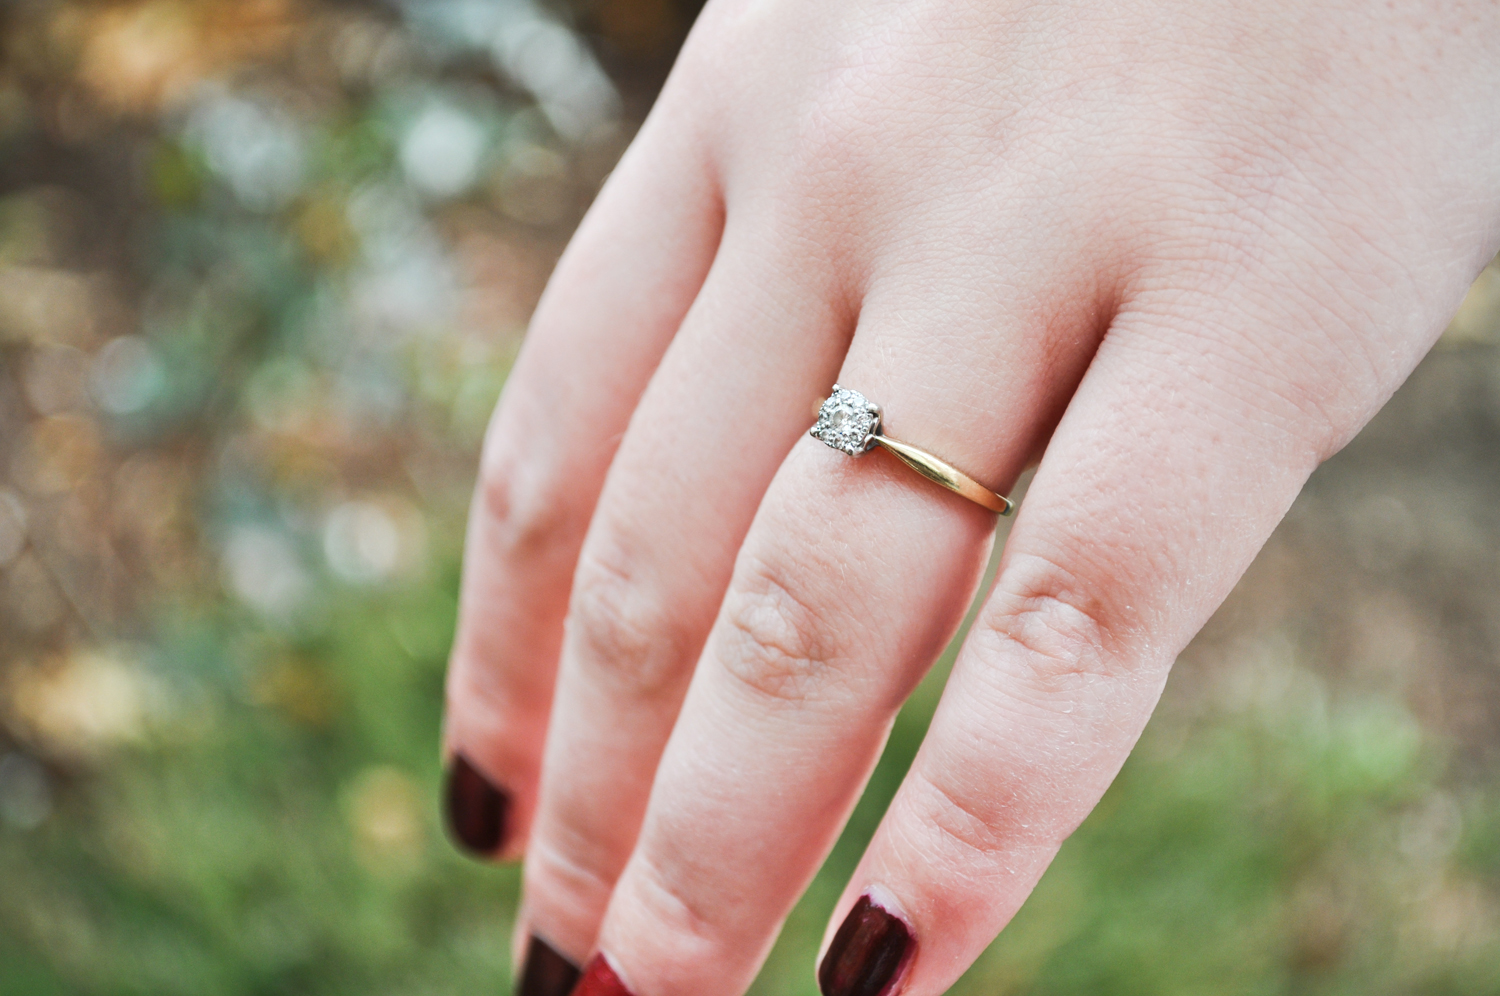 How To Find The Great Pretty Promise Rings